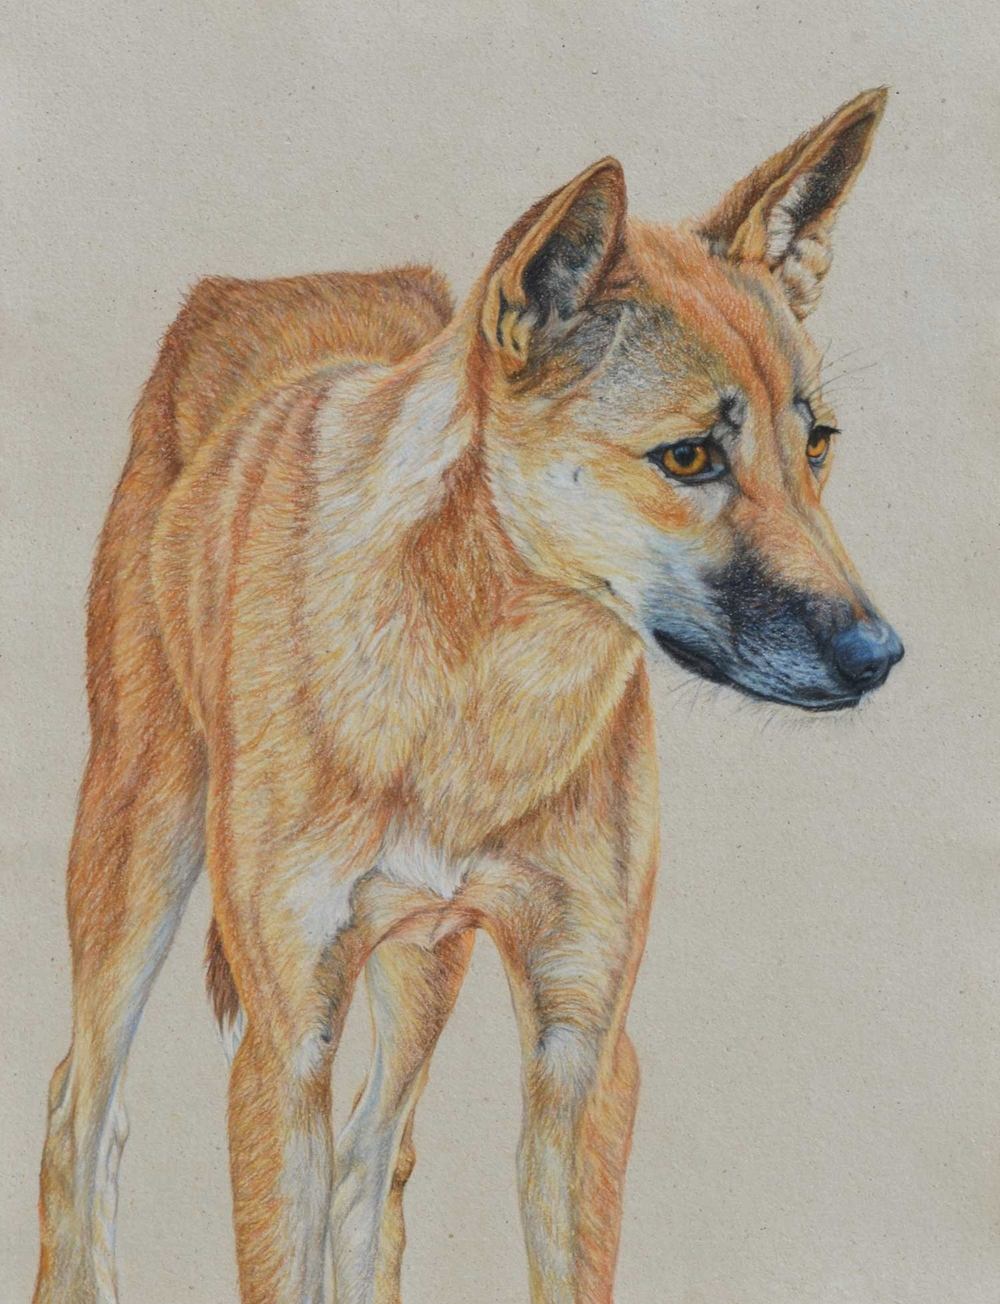 Dingo  61 x 41 CM   Pastel on handmade paper $3,750 framed Available as limited edition of 50, pigment print on watercolour paper 64 x 49 cm $950